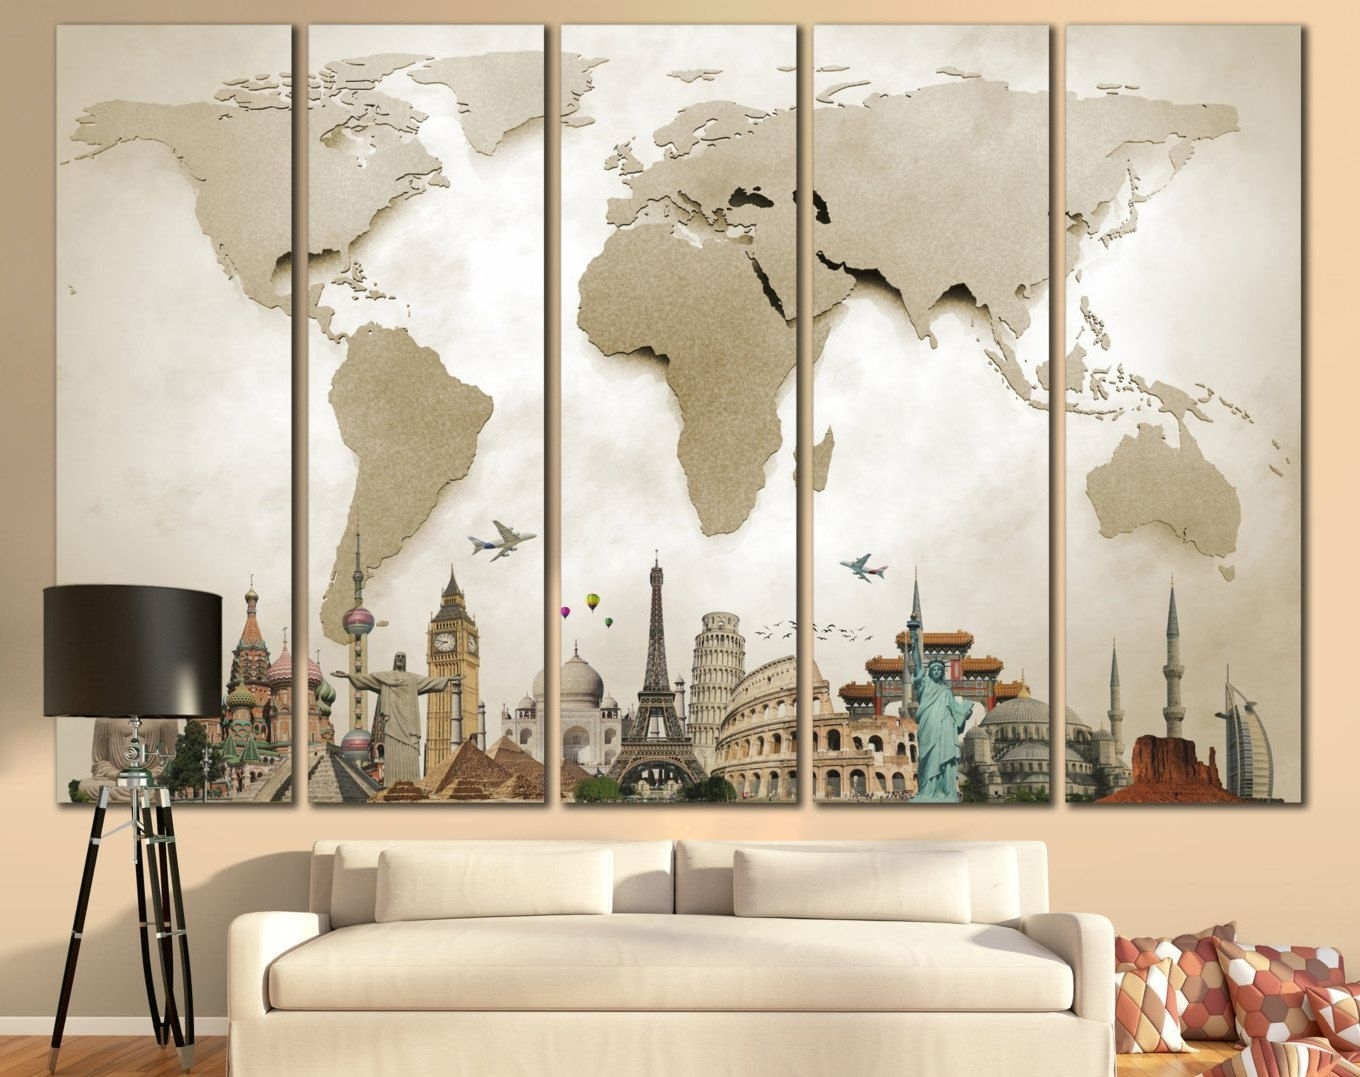 Map Of World Wall Art | Changyuheng Intended For Current Map Of The World Wall Art (View 8 of 20)